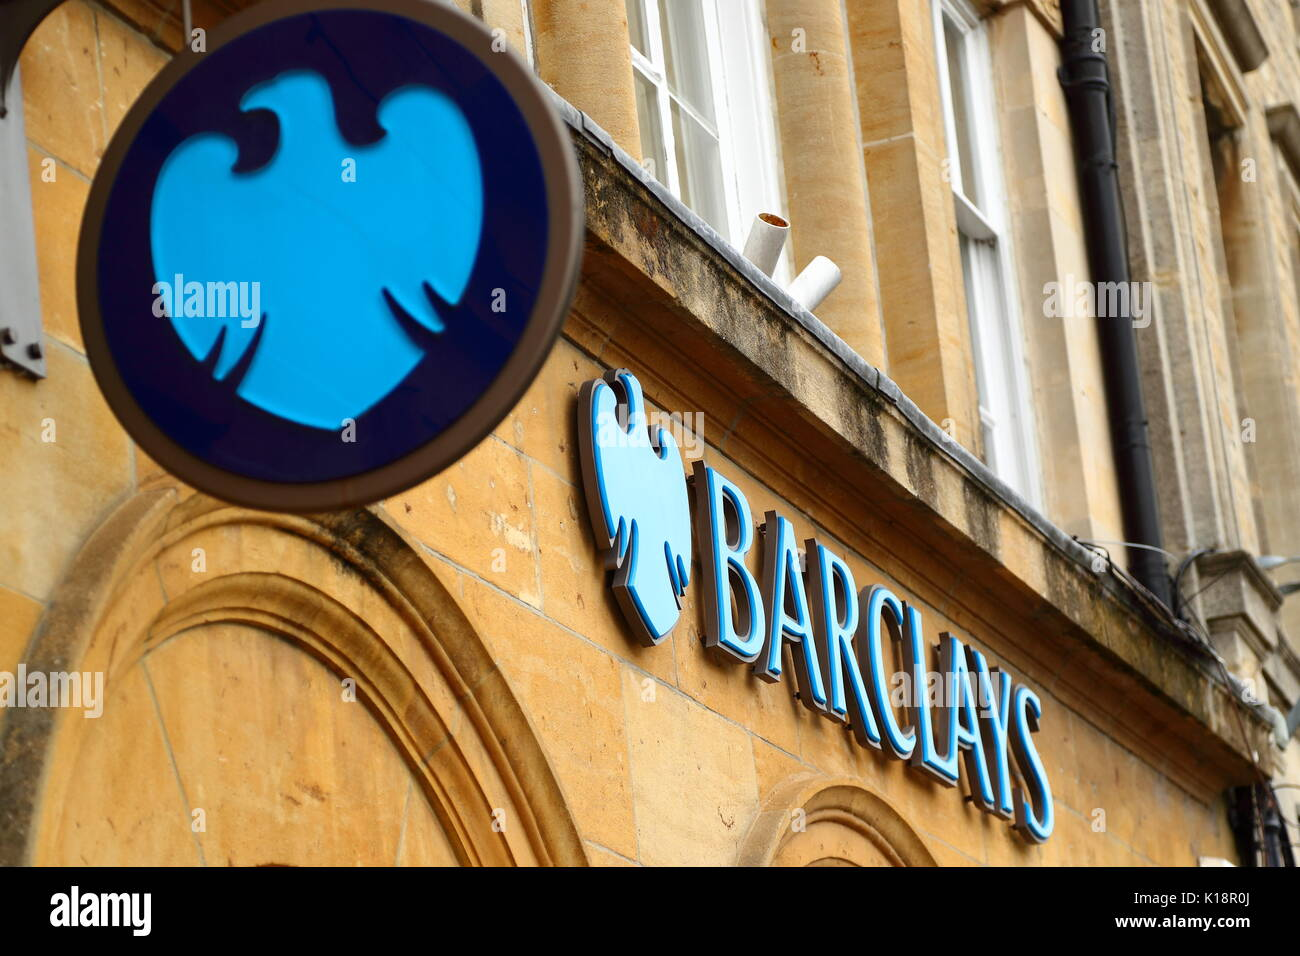 Barclays Bank in High Street, Chipping Norton, UK - Stock Image